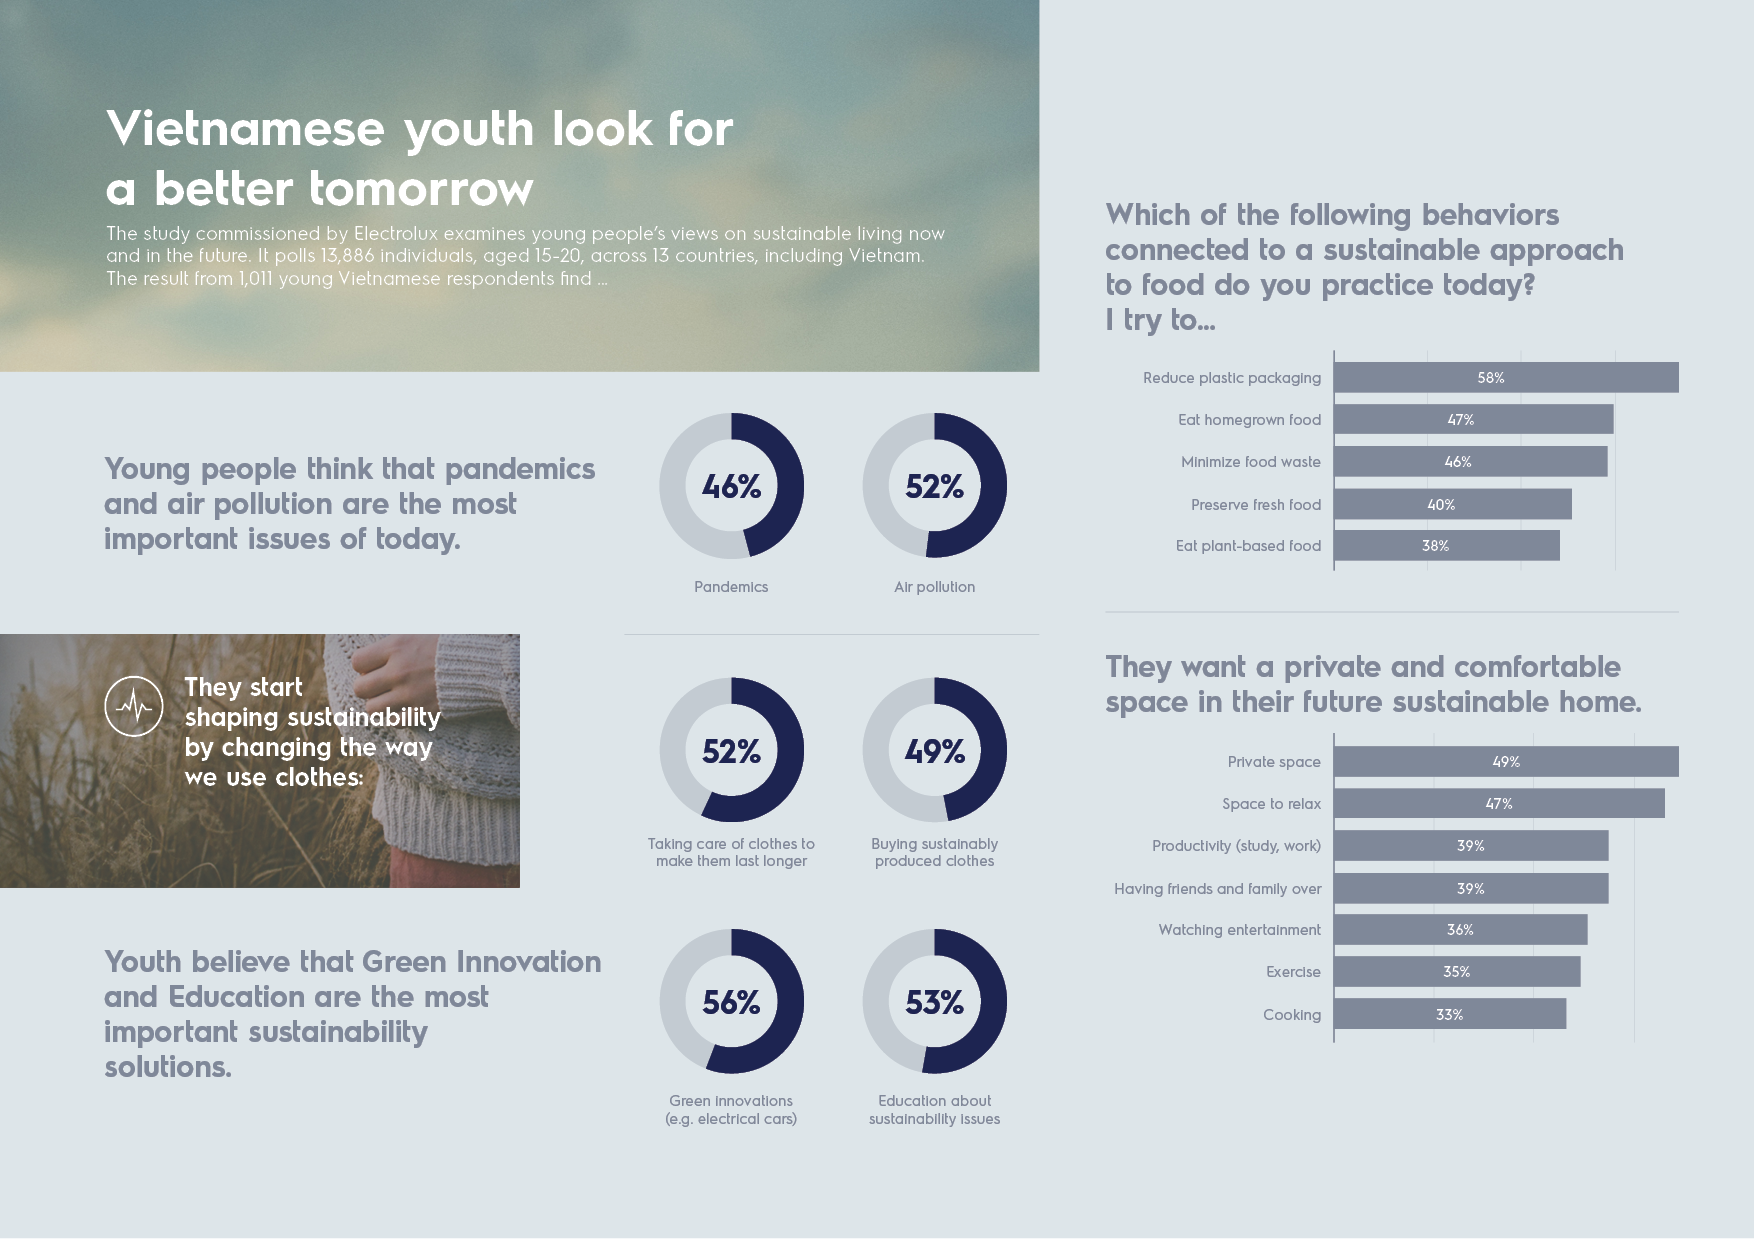 Vietnamese youth believe they can lead the way to a more sustainable future